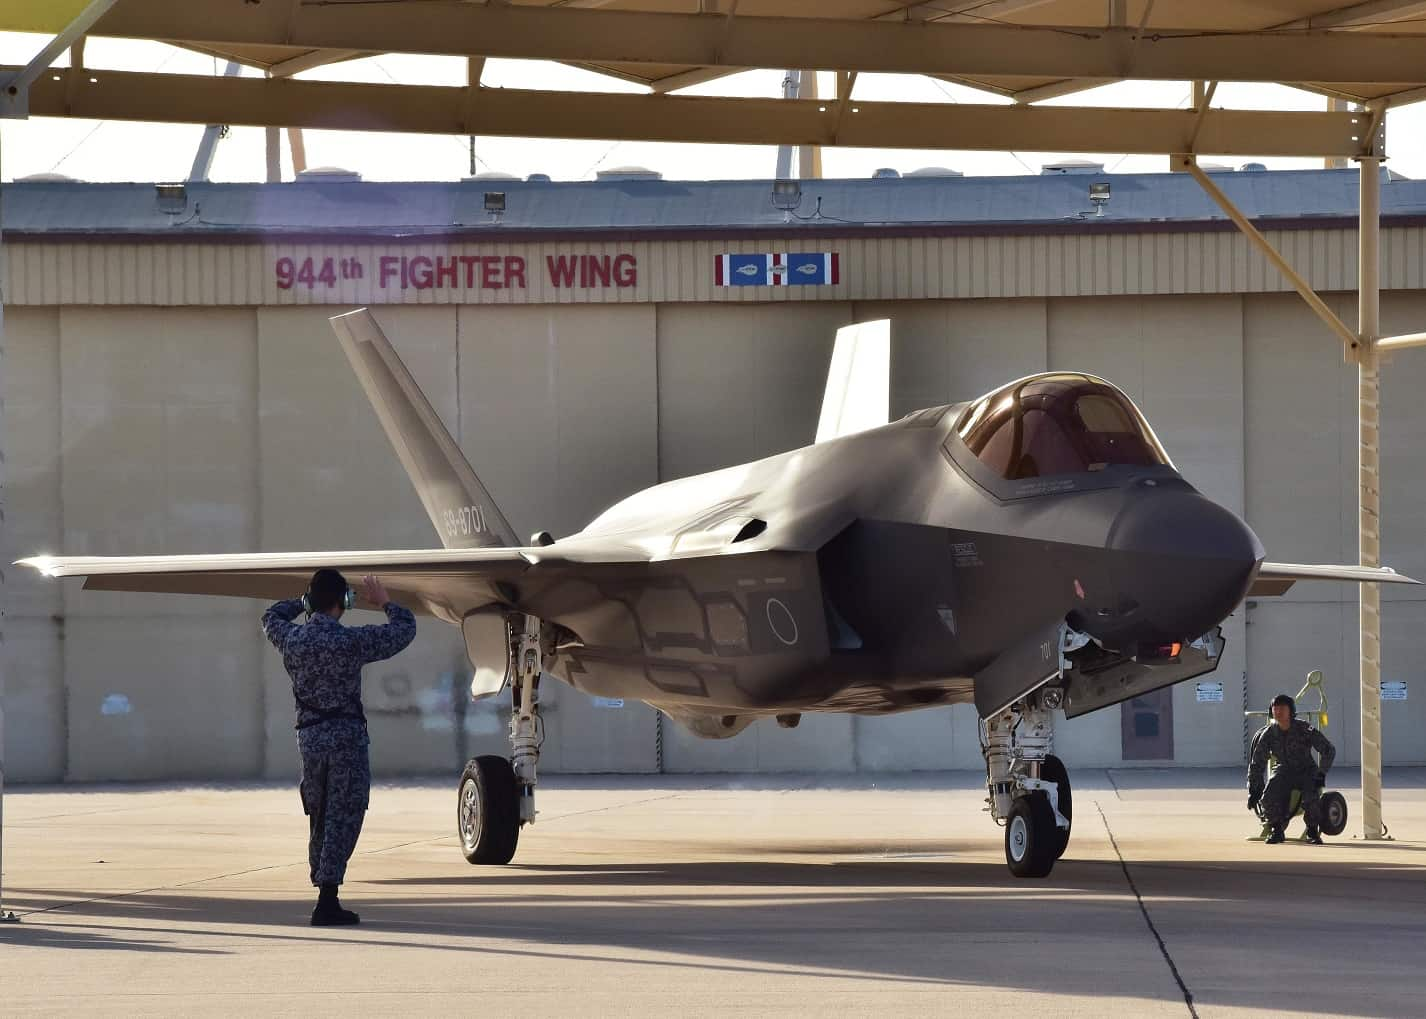 A Japanese F-35A fighter jet is missing; remaining 12 are grounded